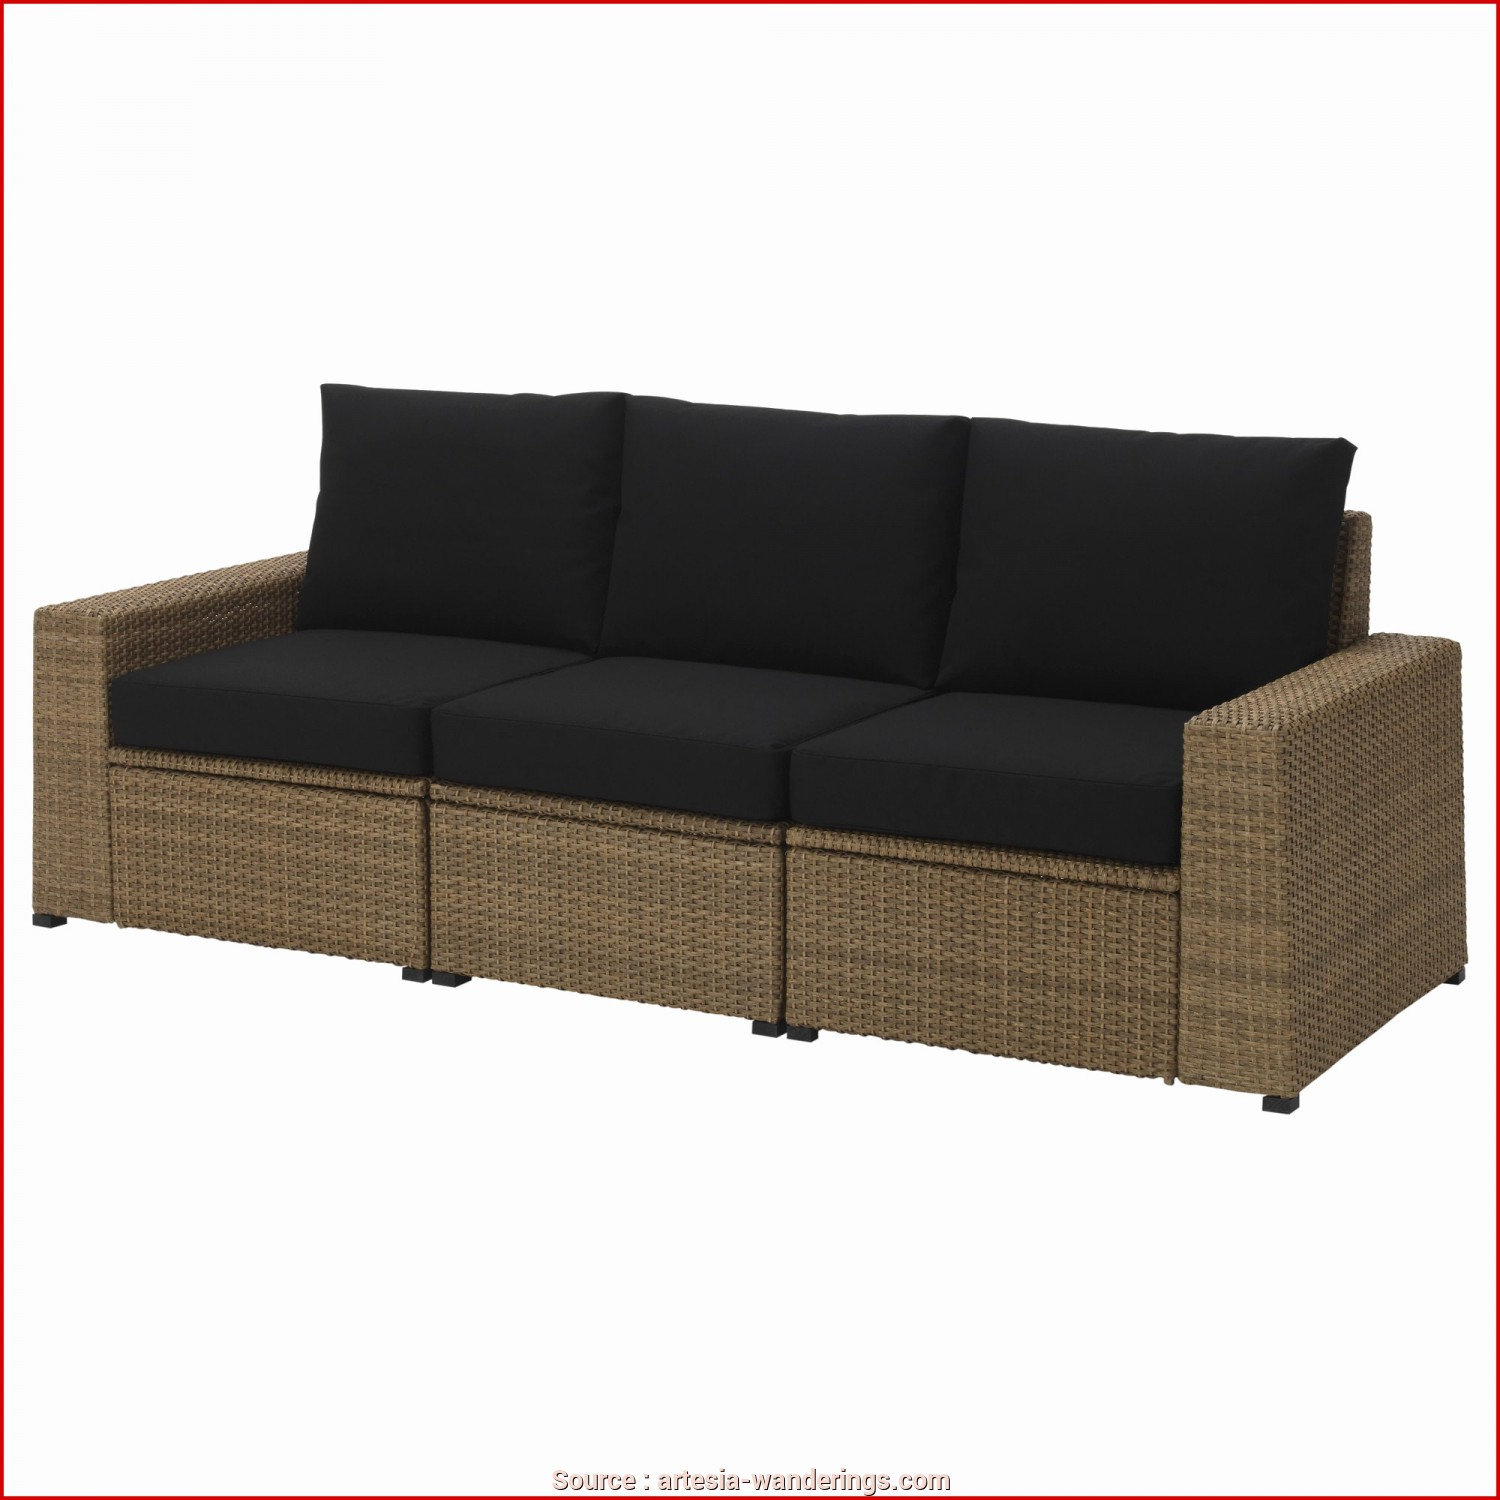 Ikea Beddinge Quietscht, Locale Best Klappbett Ikea Beautiful Ikea Sofa, Reviews S With Sofa Klappbett